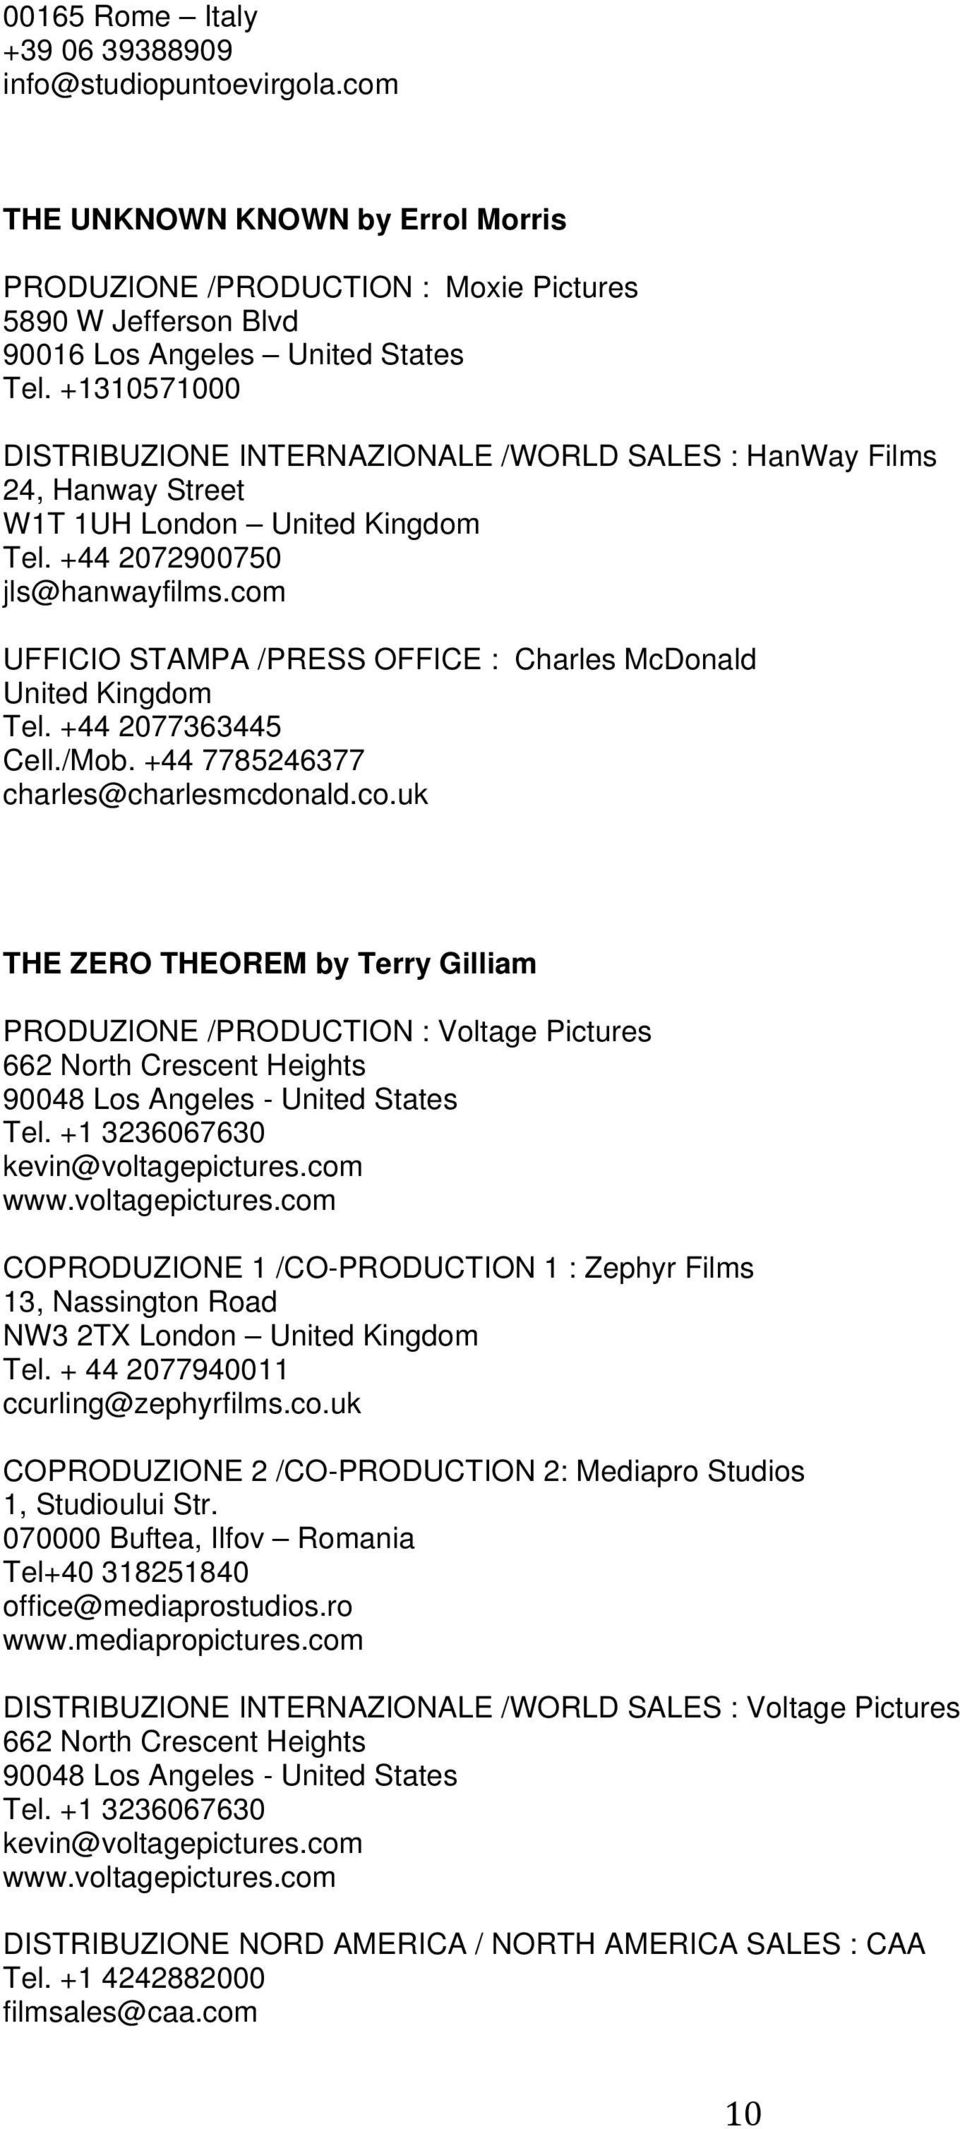 com UFFICIO STAMPA /PRESS OFFICE : Charles McDonald United Kingdom Tel. +44 2077363445 Cell./Mob. +44 7785246377 charles@charlesmcdonald.co.uk THE ZERO THEOREM by Terry Gilliam PRODUZIONE /PRODUCTION : Voltage Pictures 662 North Crescent Heights 90048 Los Angeles - United States Tel.